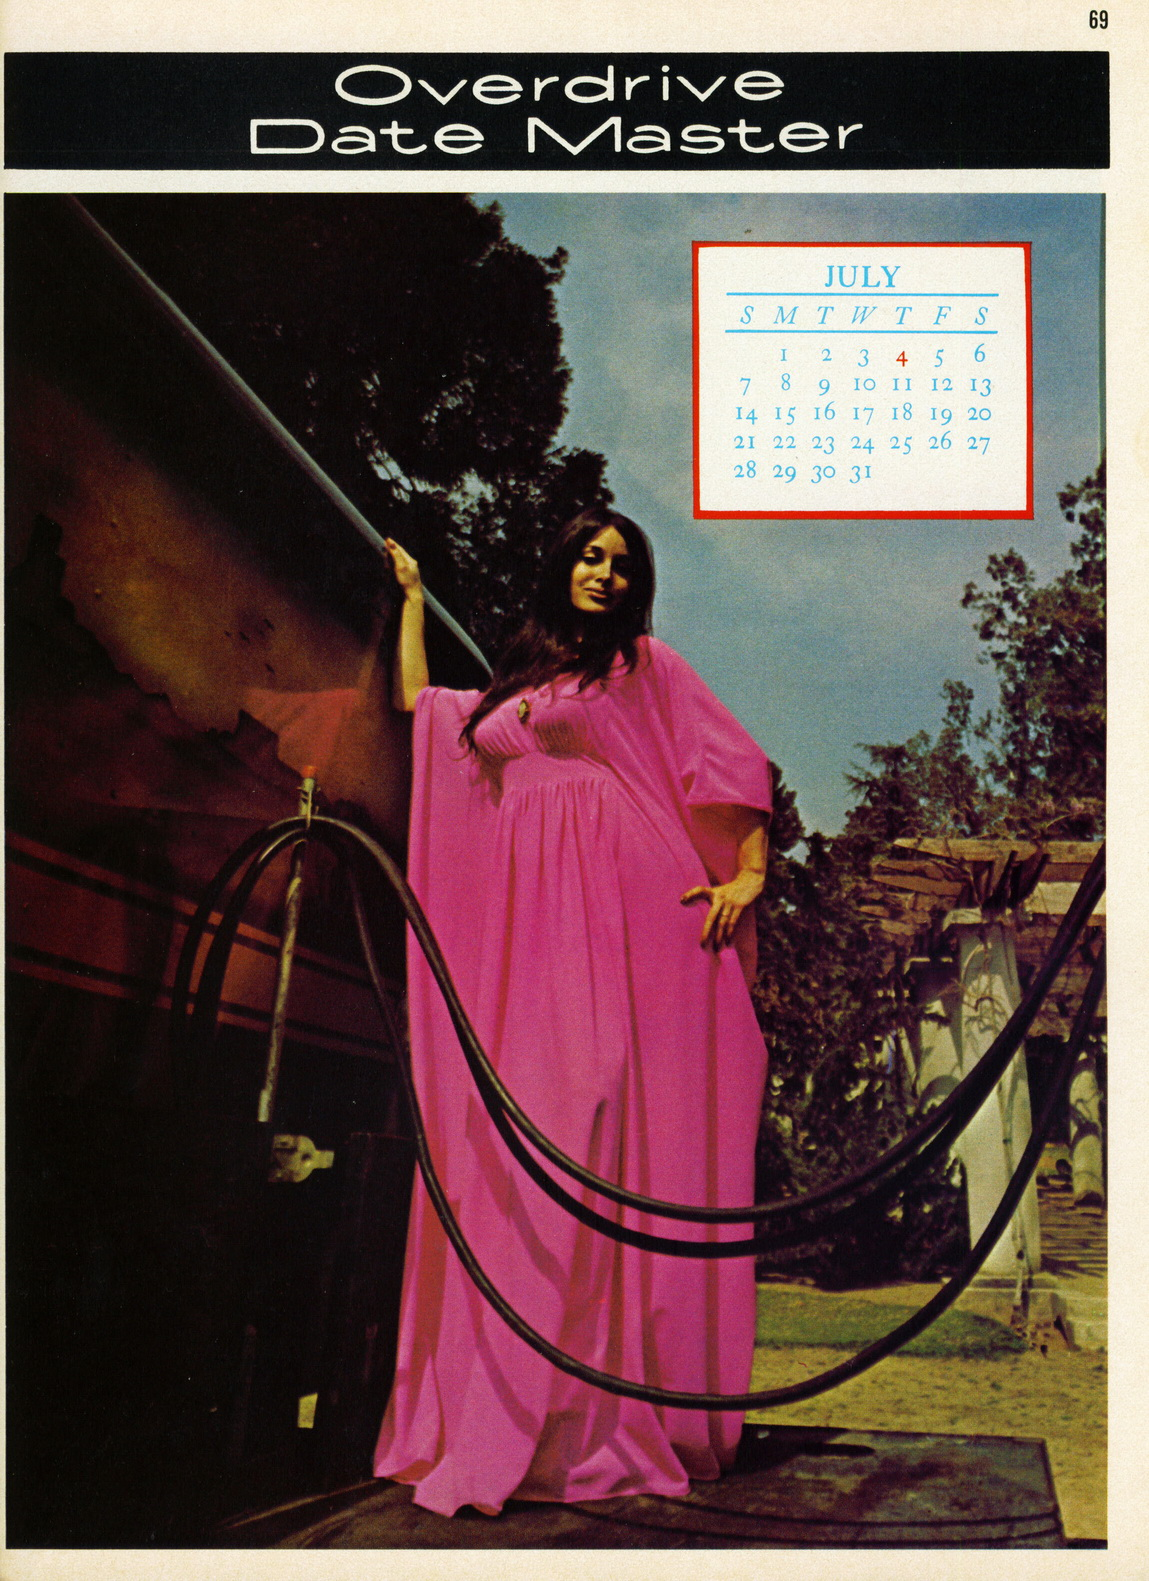 July1974DateMaster1